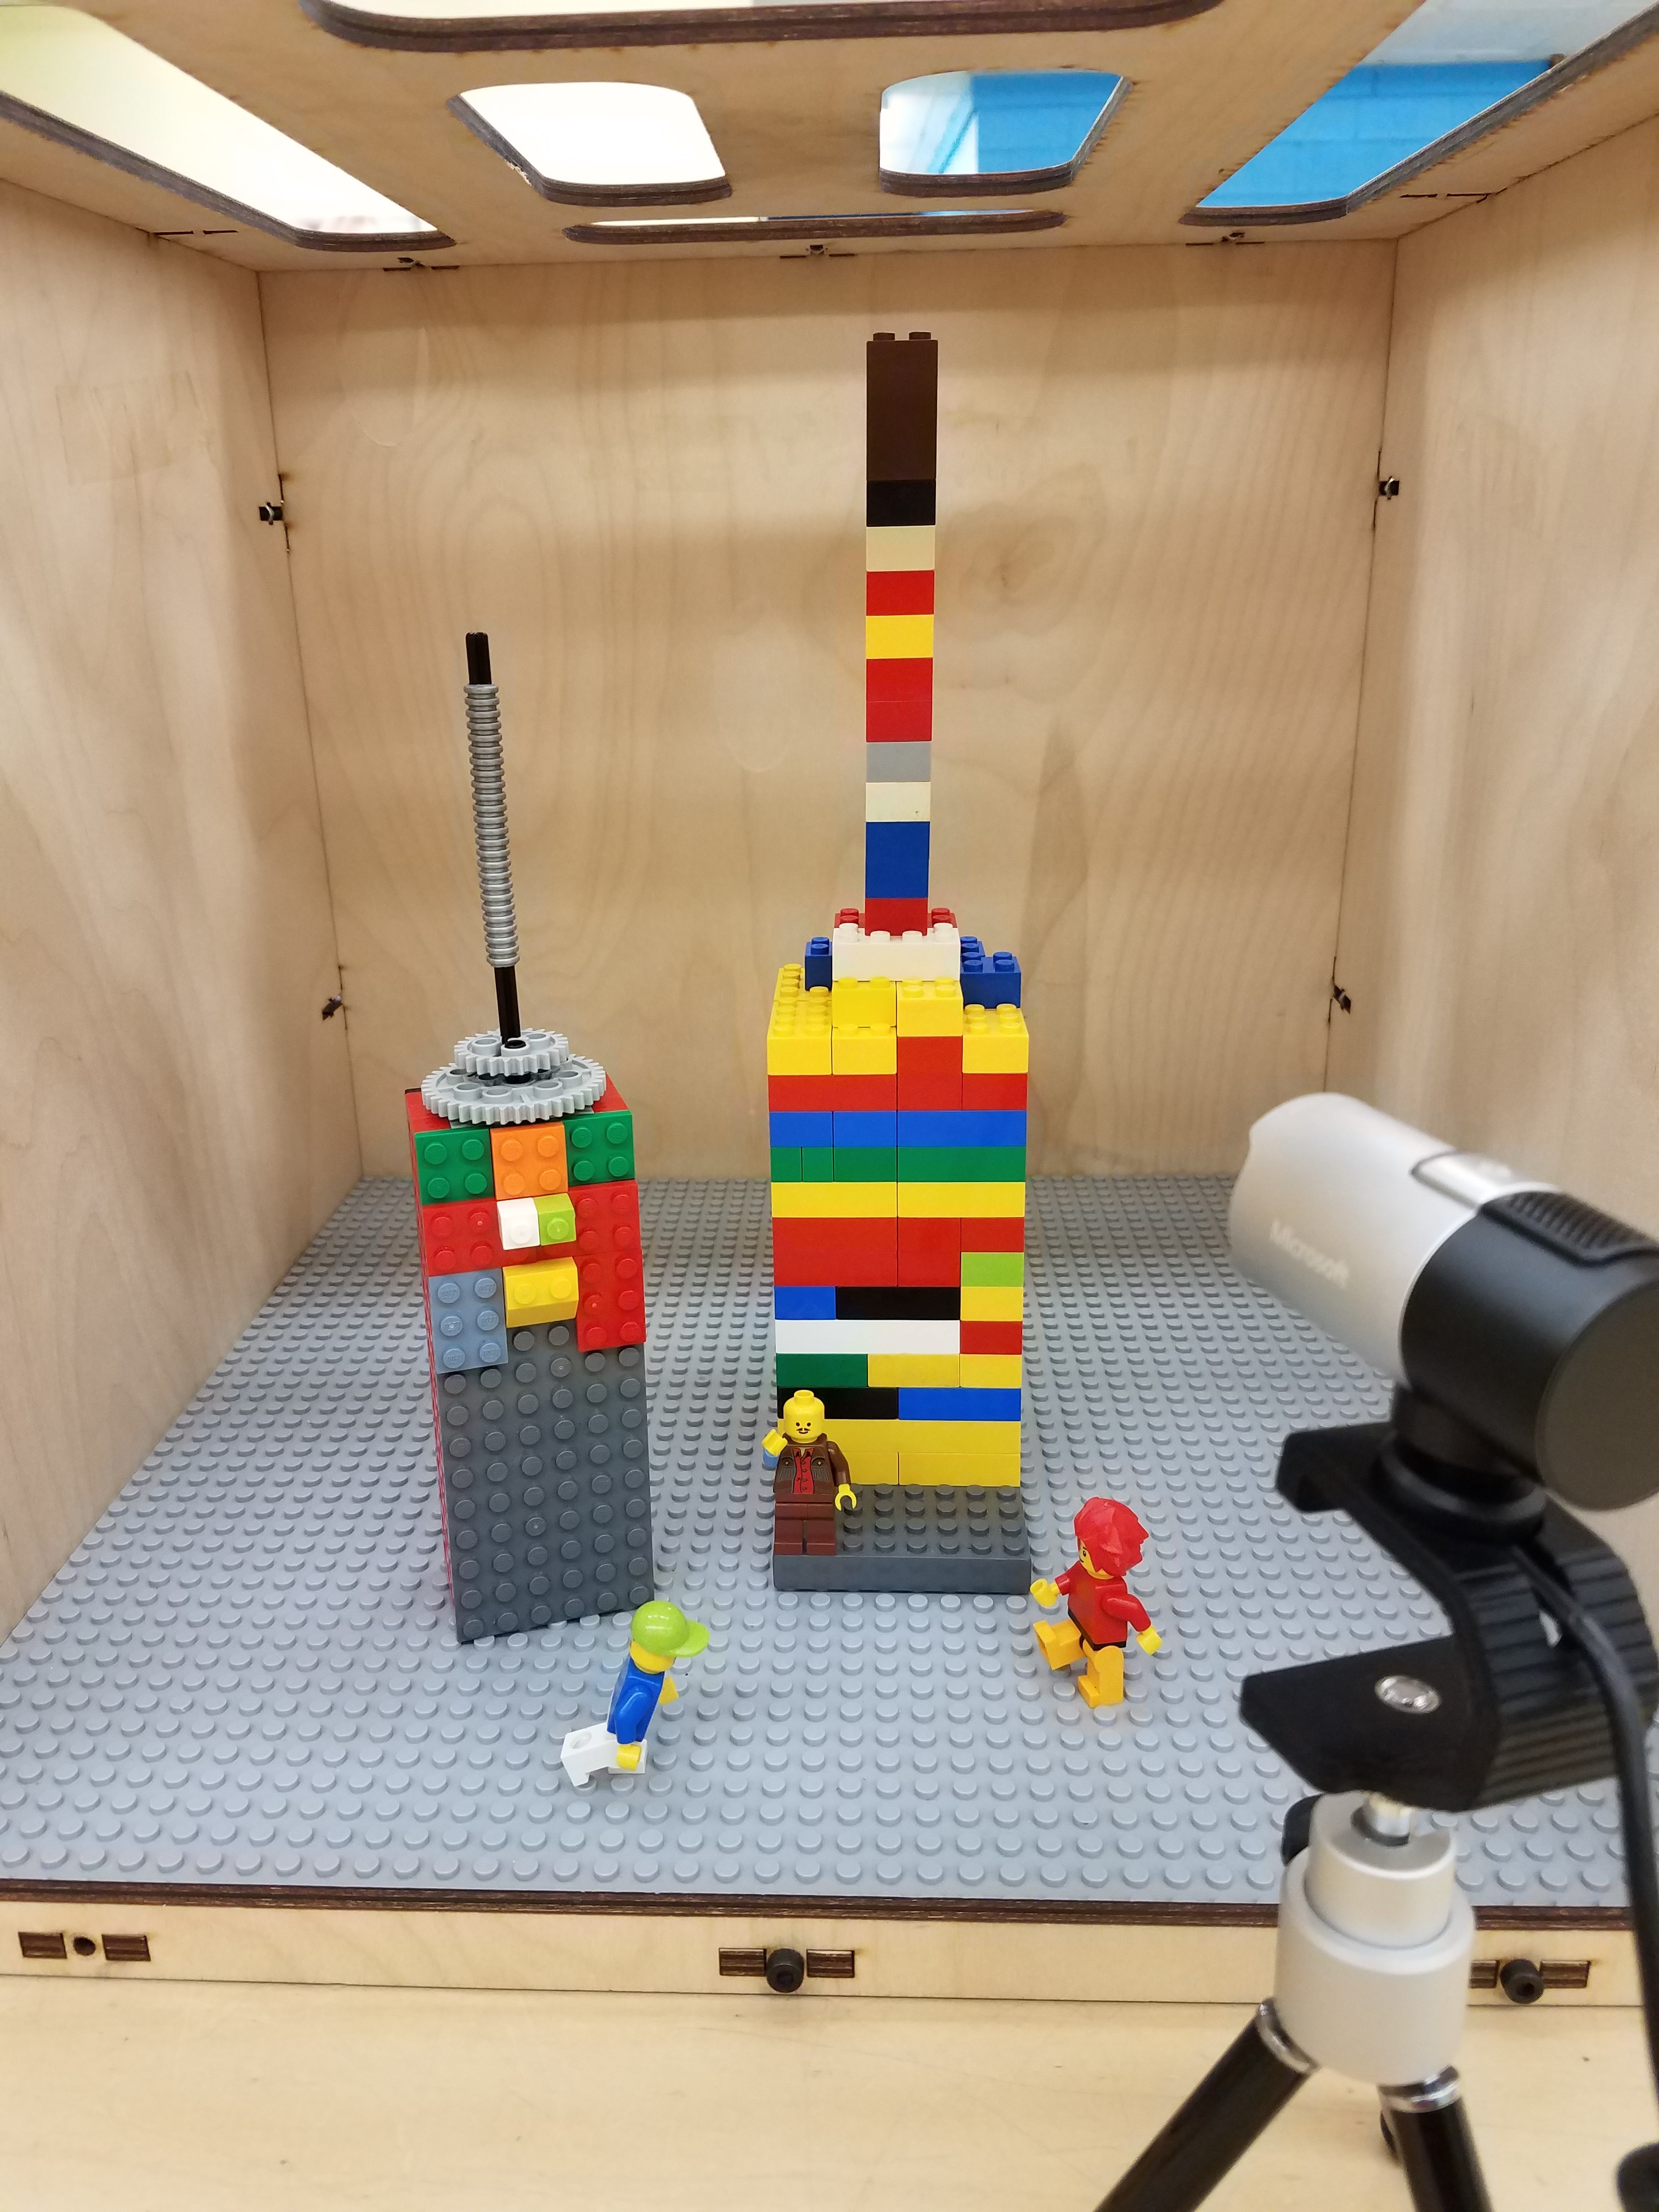 picture of a well-lit LEGO scene inside a wooden box, with a camera on a tripod in the foreground capturing the scene